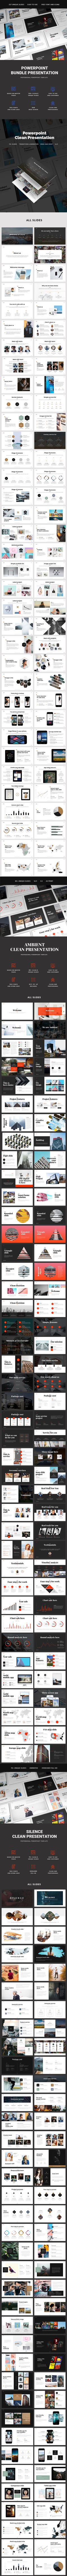 3 Awesome Powerpoint Templates #infographics #elegant • Download ➝ https://graphicriver.net/item/bundle-powerpoint-3-in-1/19910471?ref=pxcr